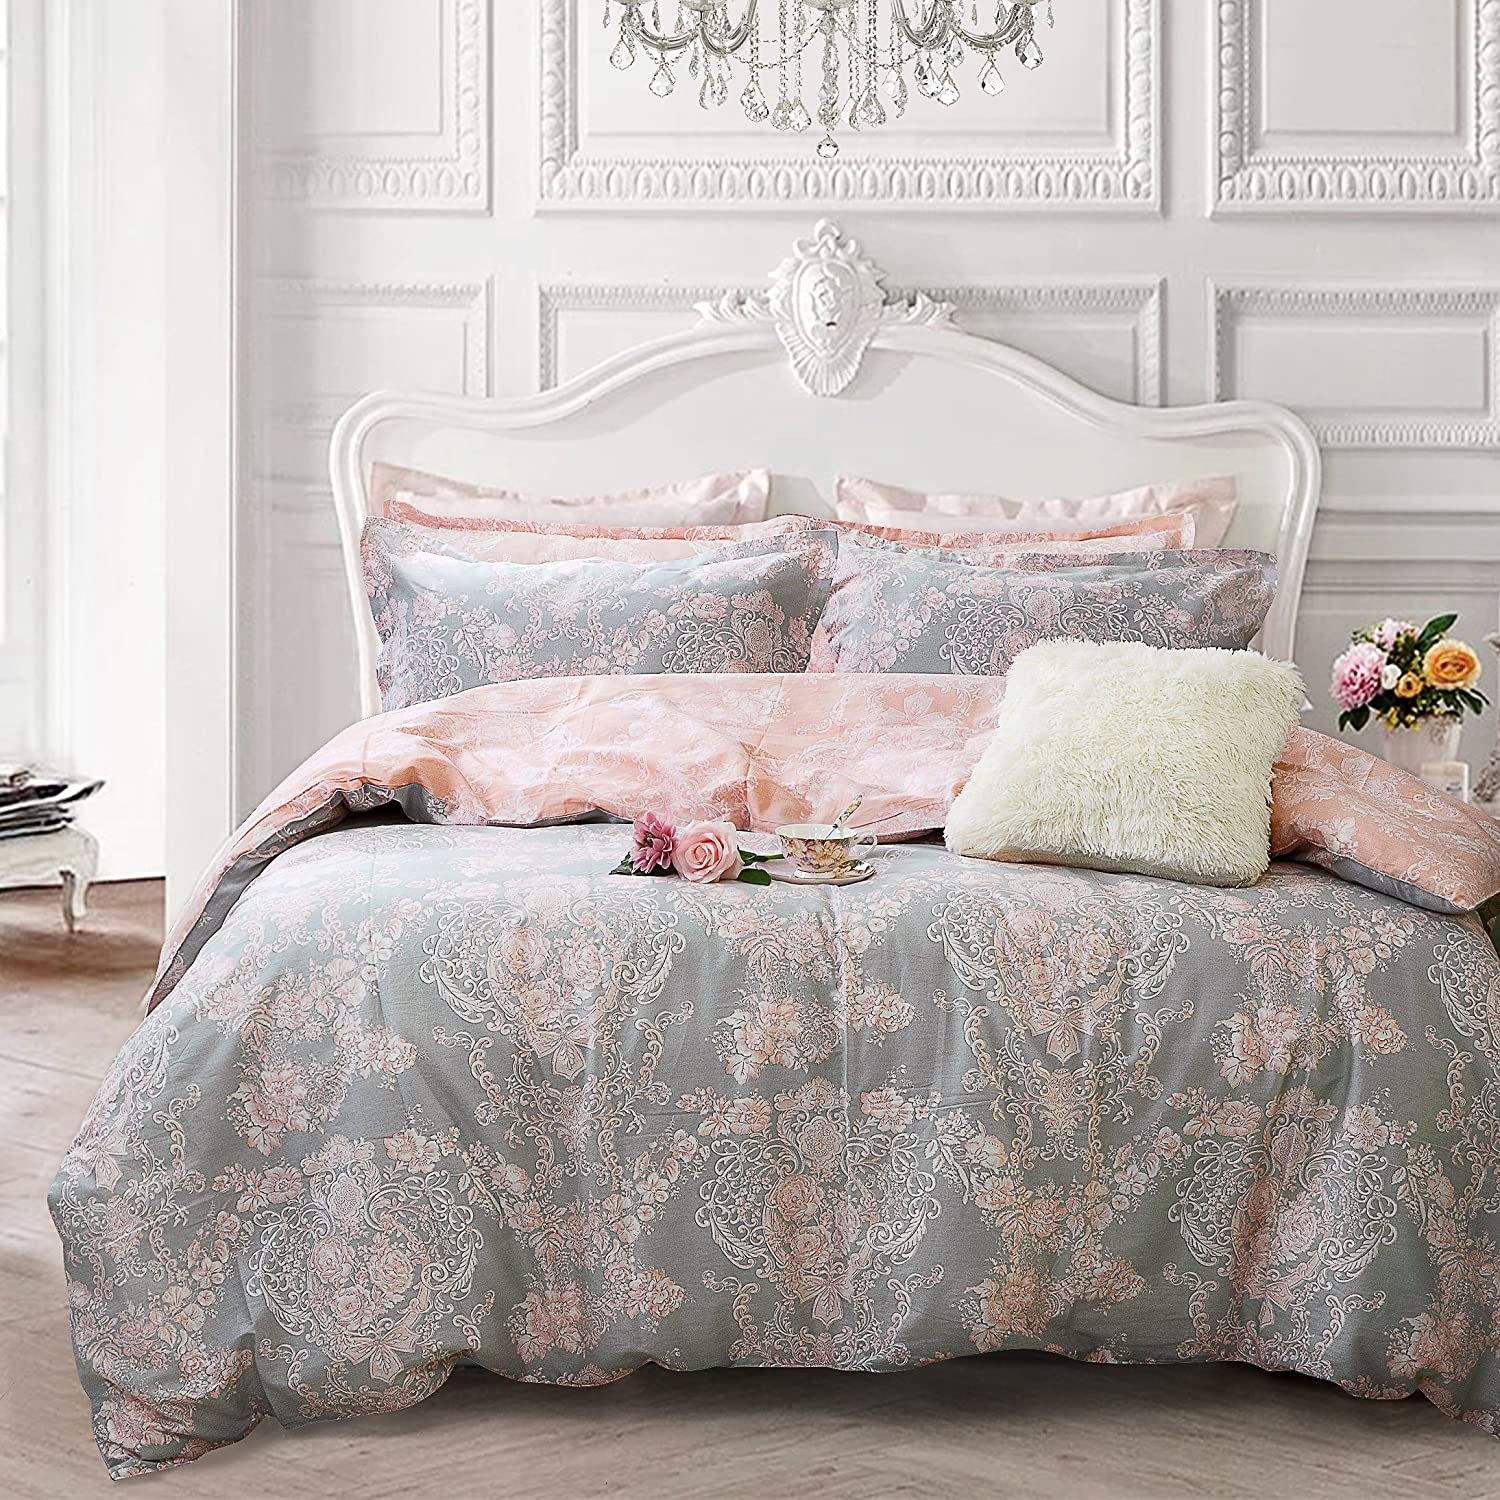 girls bedding Amazon.com: Brandream Blush Pink Girls Bedding Set 100% Cotton Damask  Floral Bedding Zipper Duvet Cover Set Twin-Twin XL: Home u0026 Kitchen